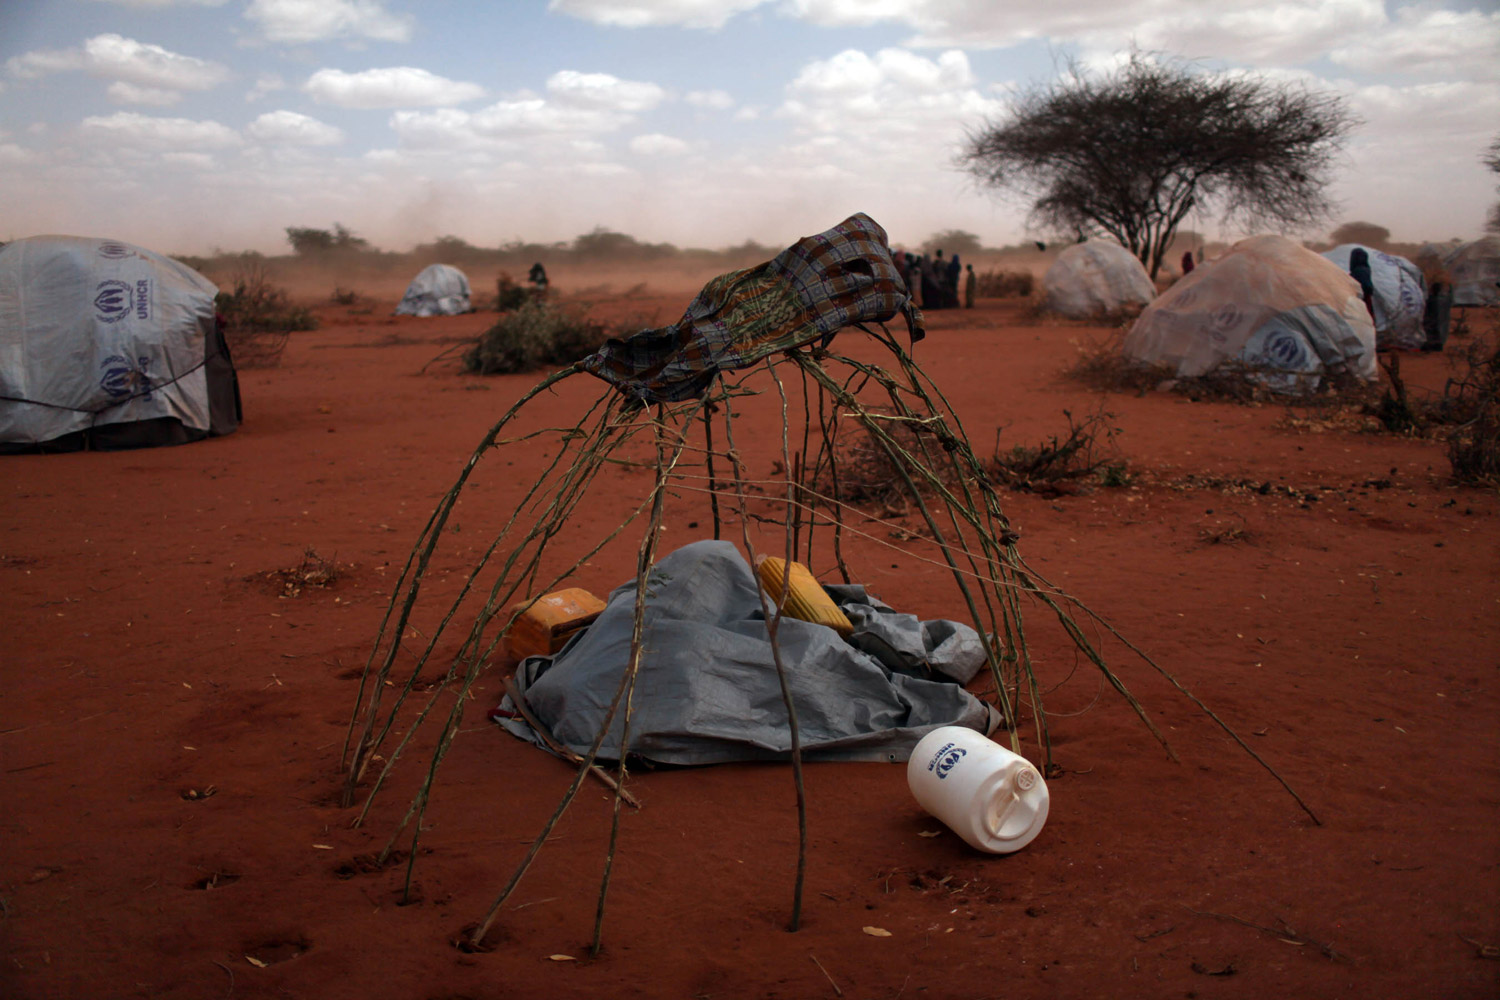 A makeshift shelter in the Dadaab refugee complex.